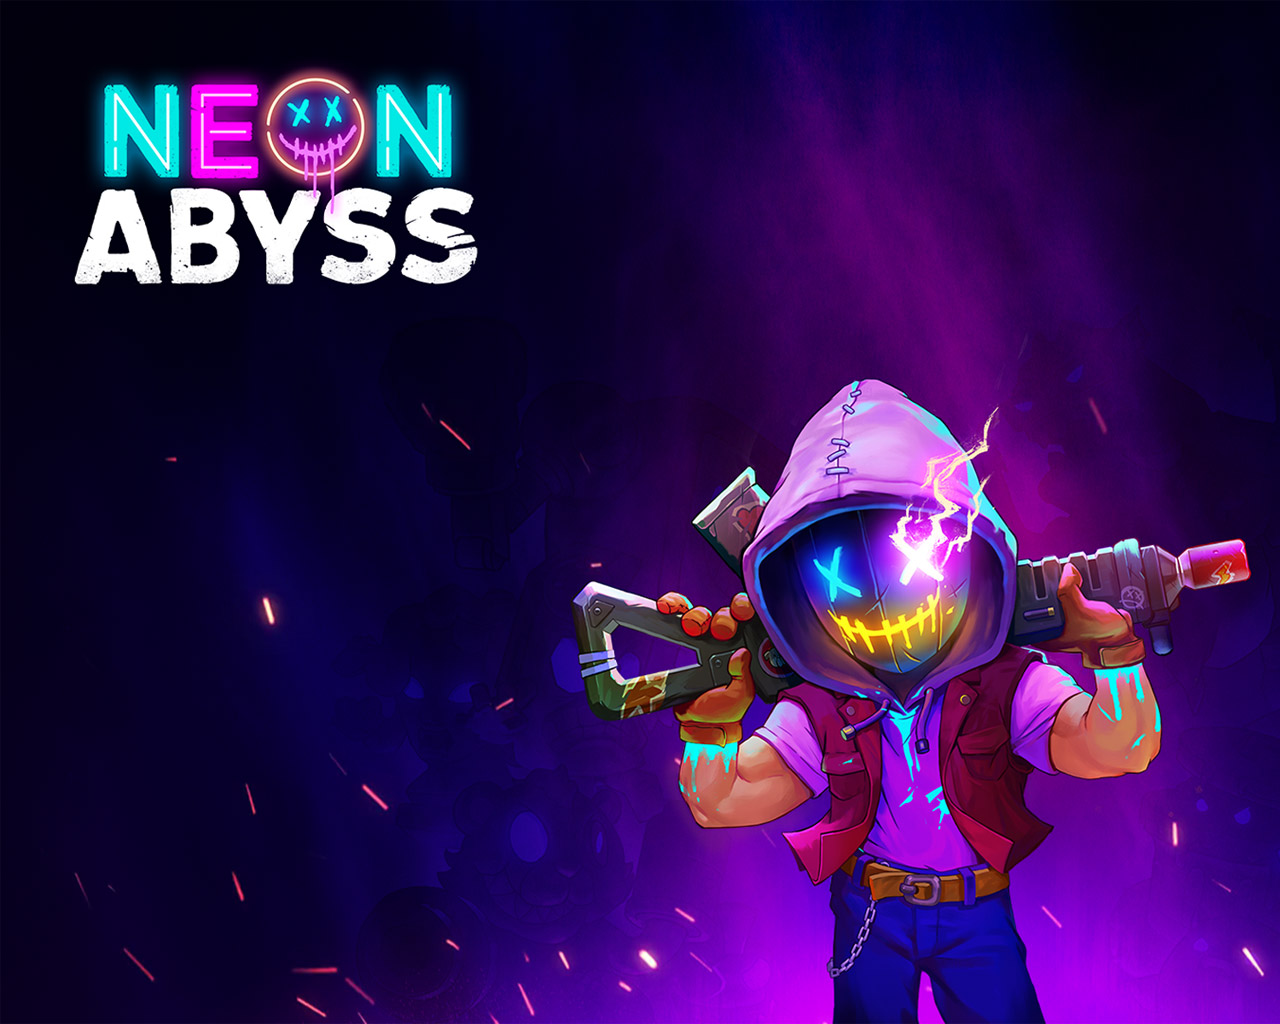 Neon Abyss Wallpaper in 1280x1024